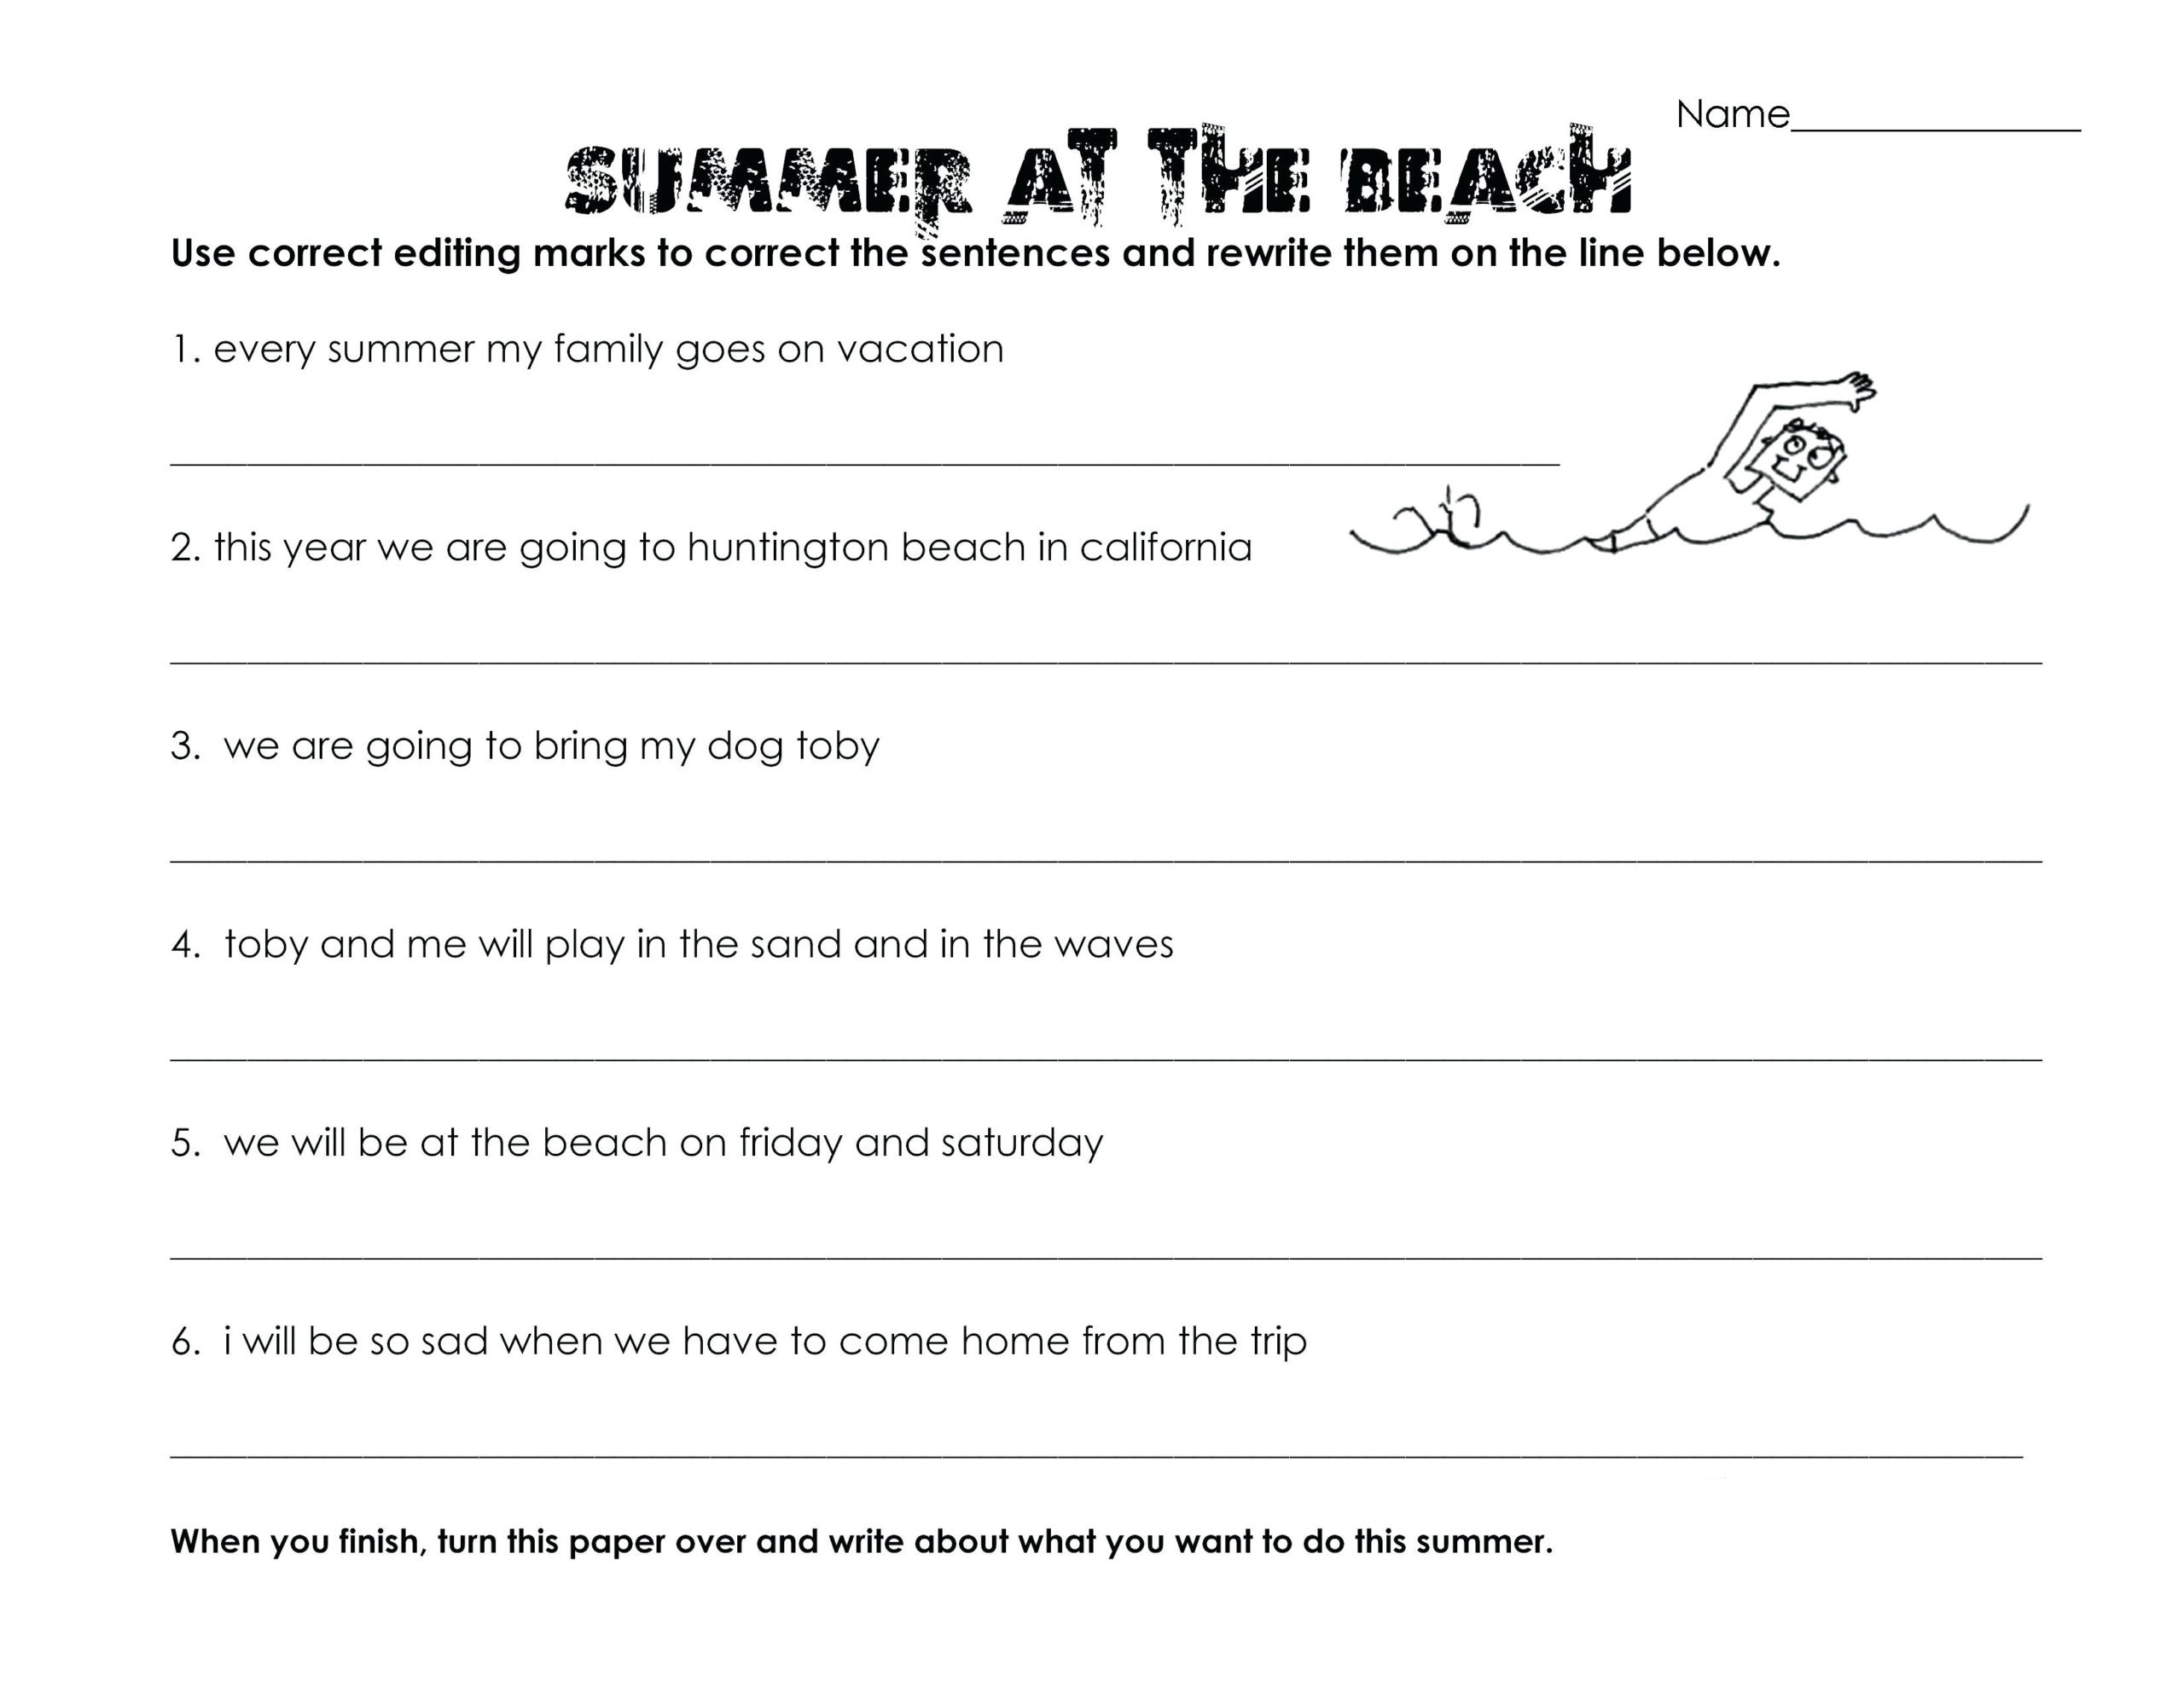 Editing Worksheets 3rd Grade 3rd Grade Worksheets Best Coloring for Kids Summer Fun